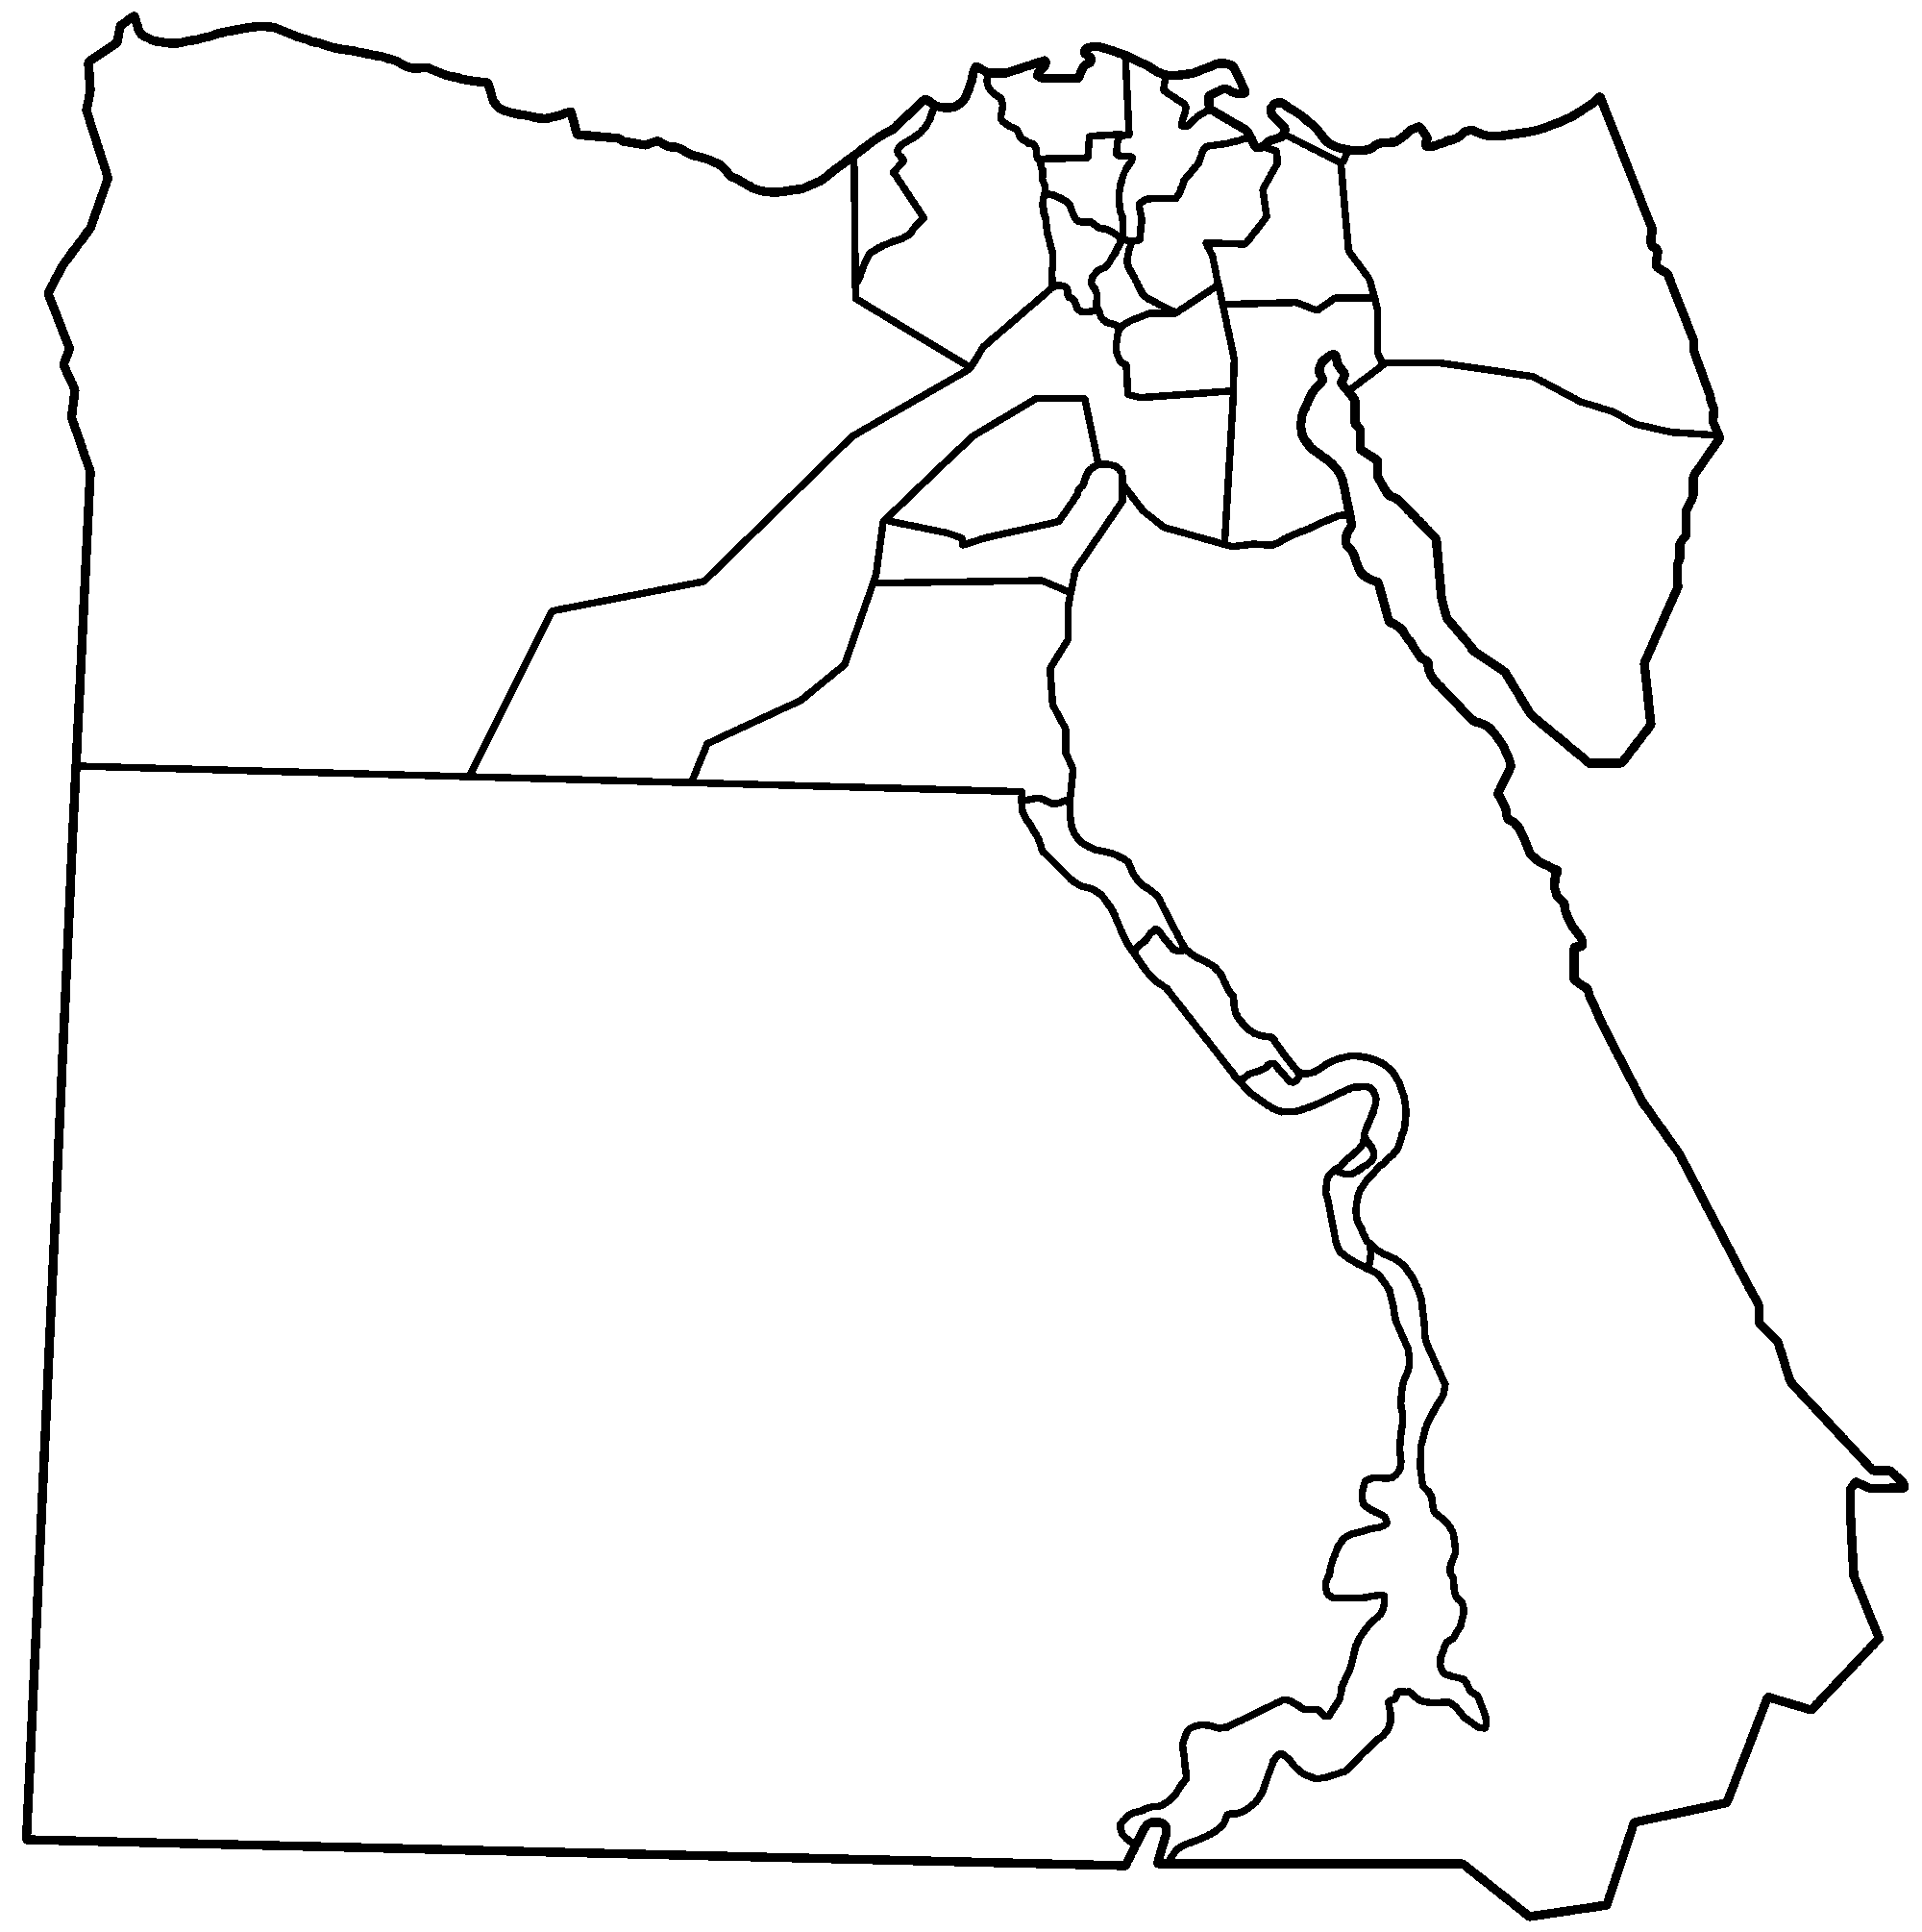 Egypt Map Outline Printable - Map of egypt outline printable